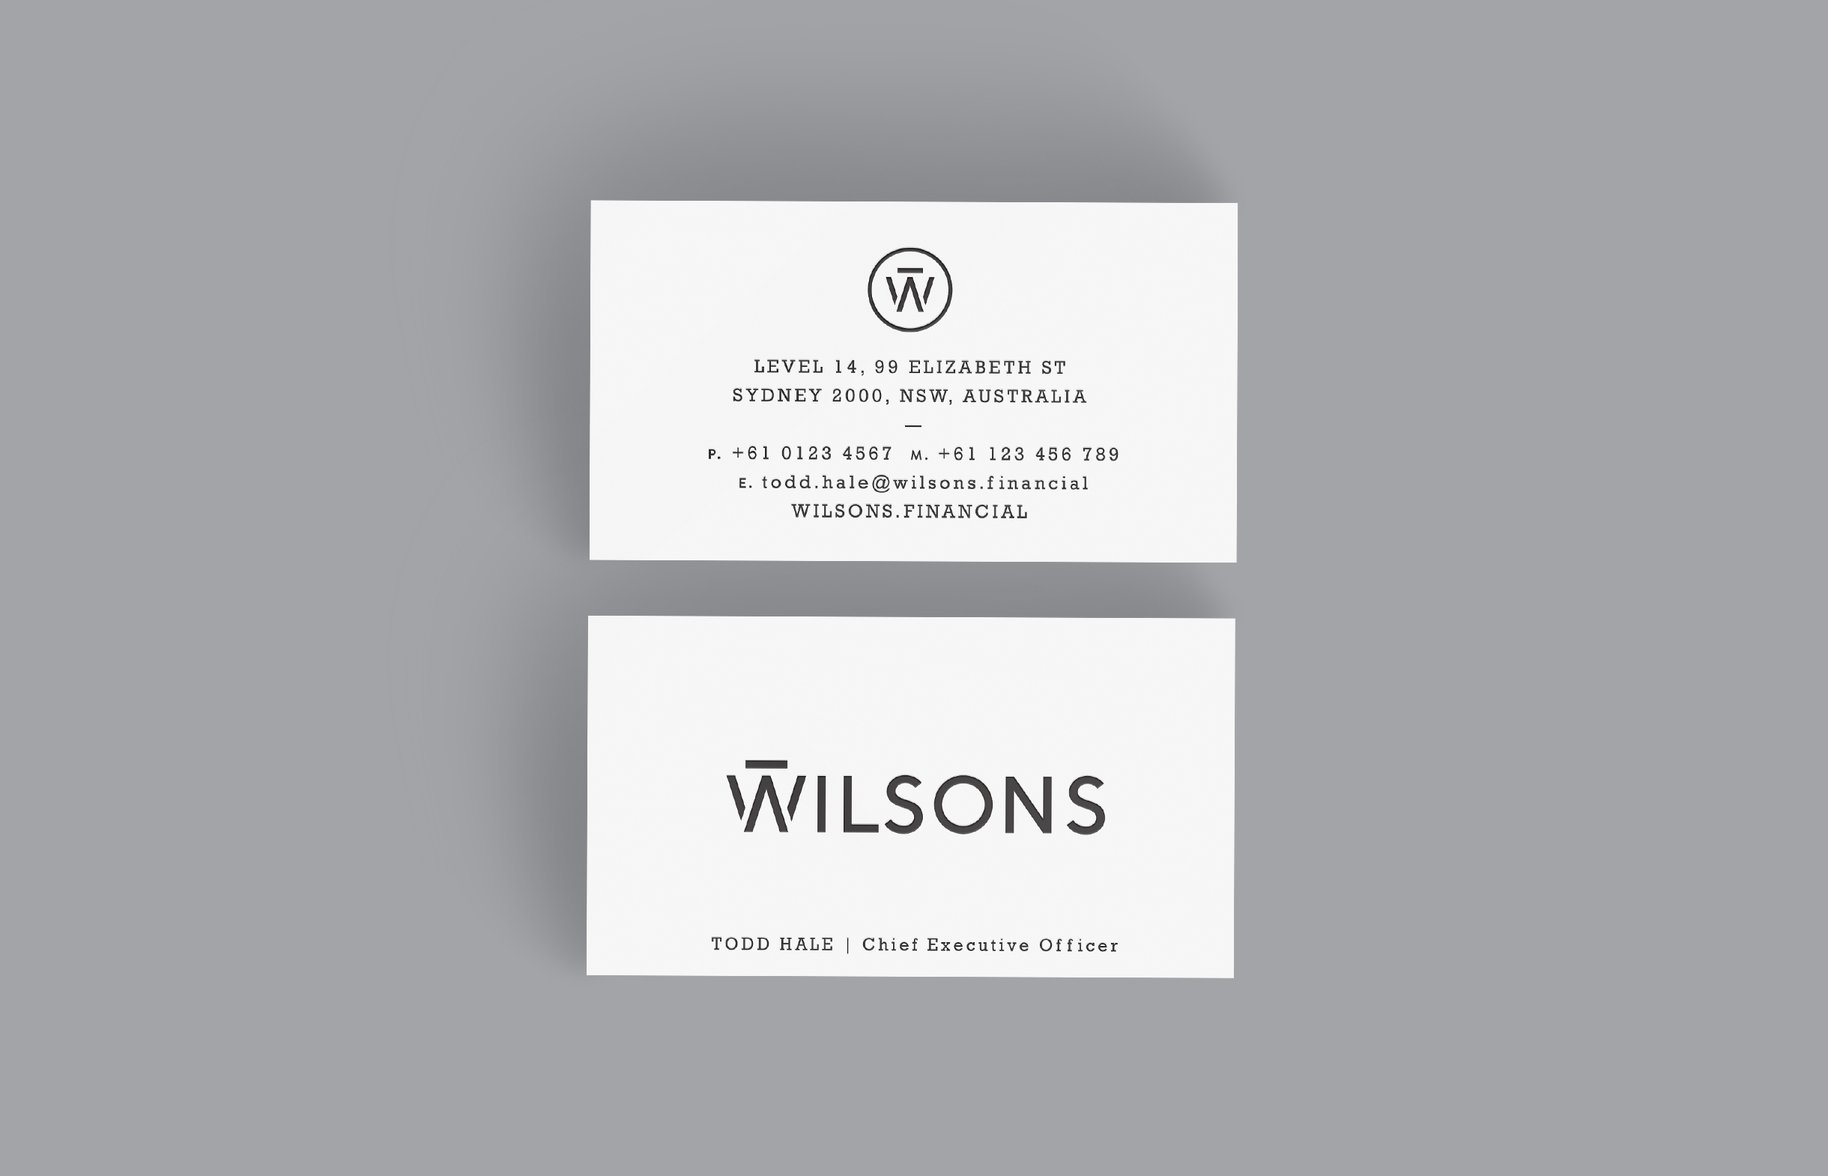 Wilsons Business Cards